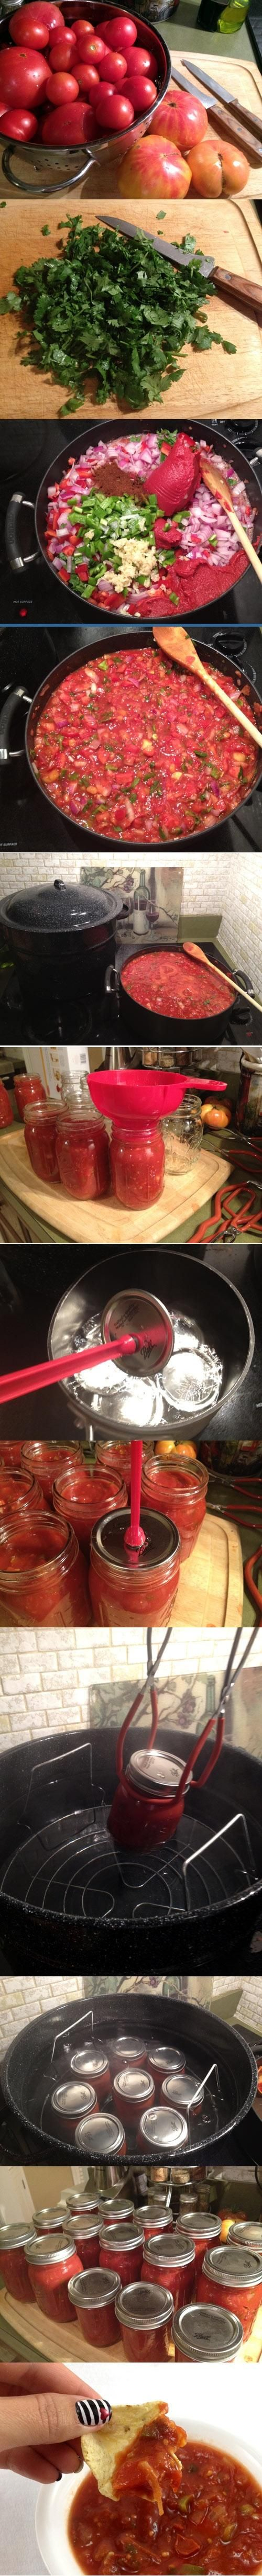 Making Homemade Salsa and Canning Step-by-Step How To Instructions